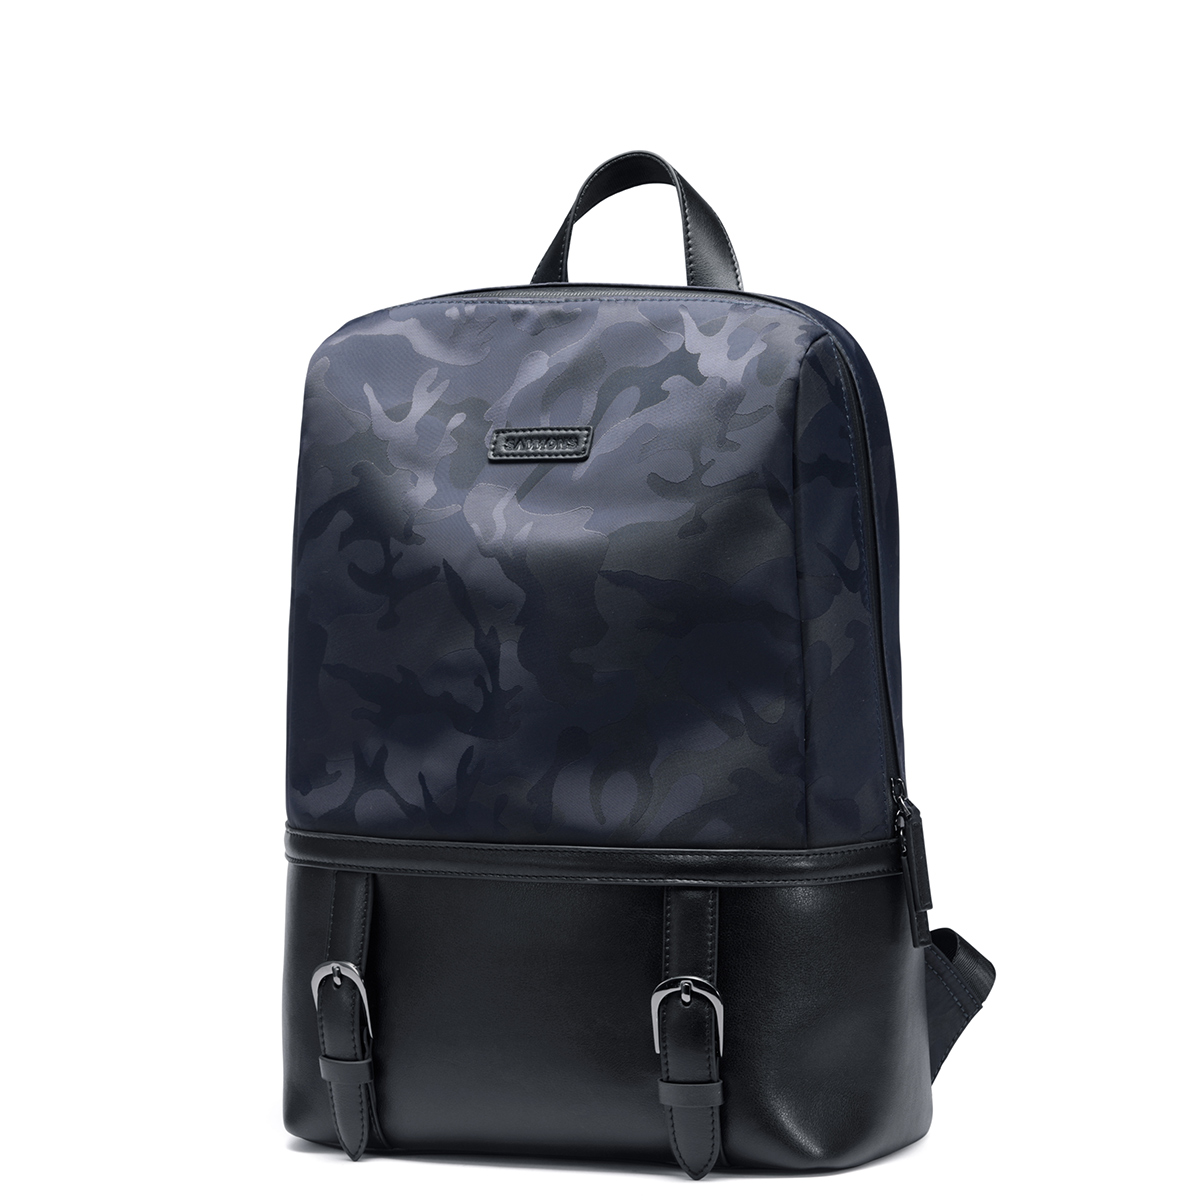 Men Backpacks High Quality Genuine Cow Leather Nylon Camouflage Man Schoolbag Large Capacity Male Waterproof Laptop Travel Bag 100% genuine leather men backpack large capacity man travel bags high quality male business bag for man computer laptop bag